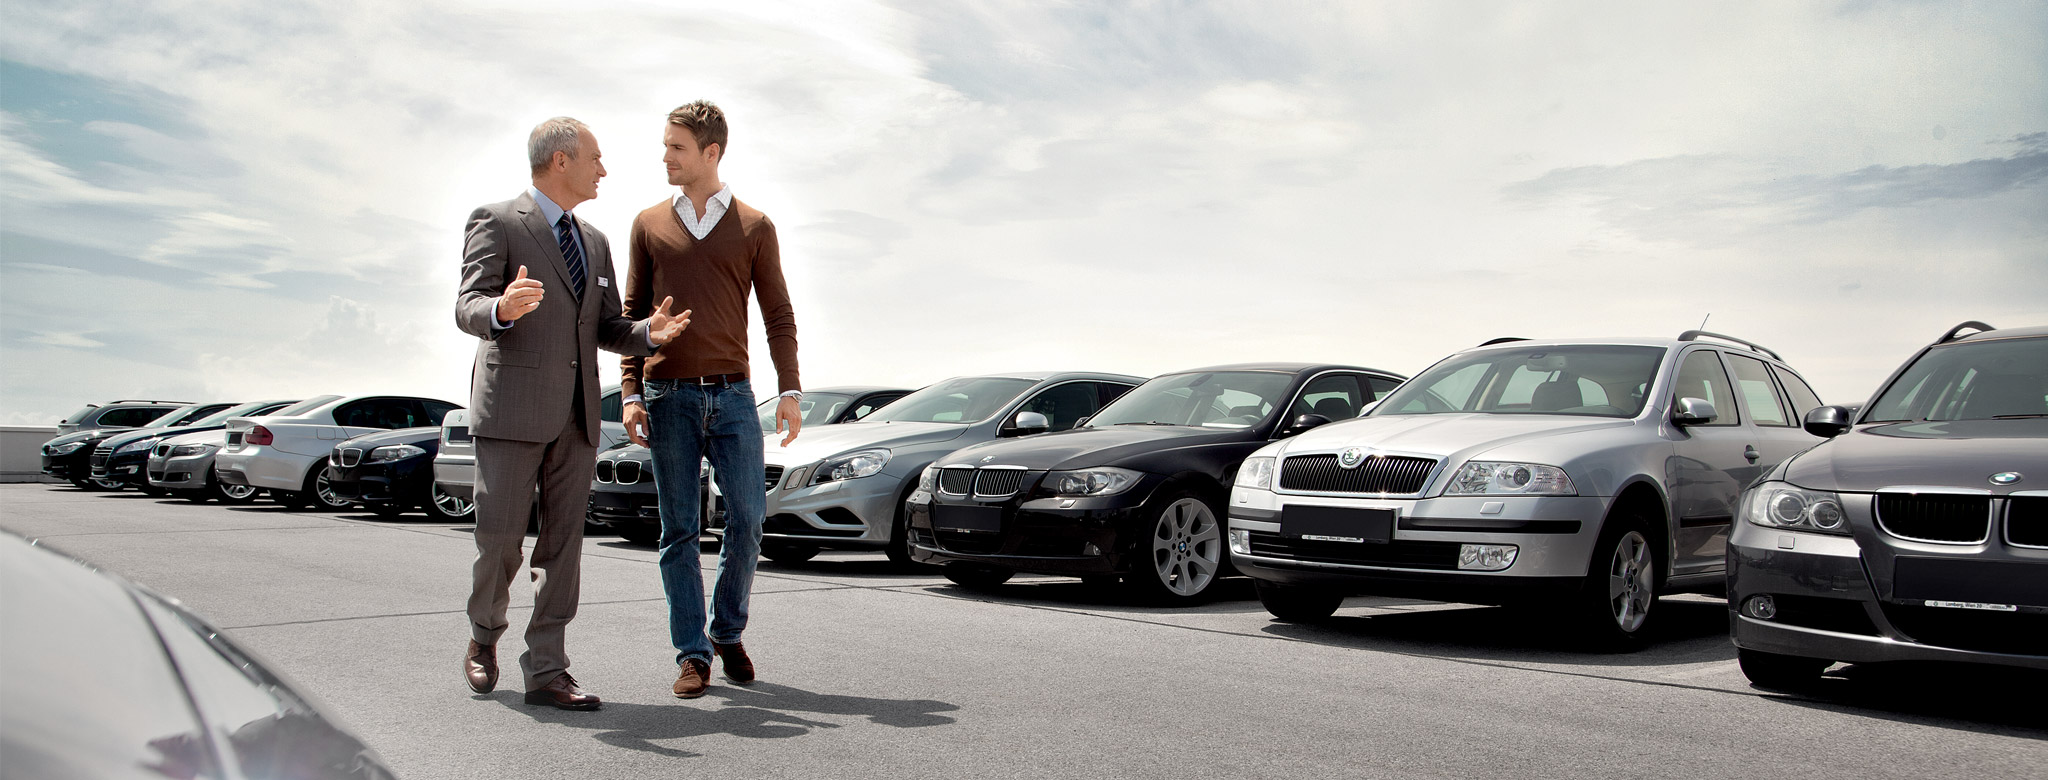 Variety of cars to choose from